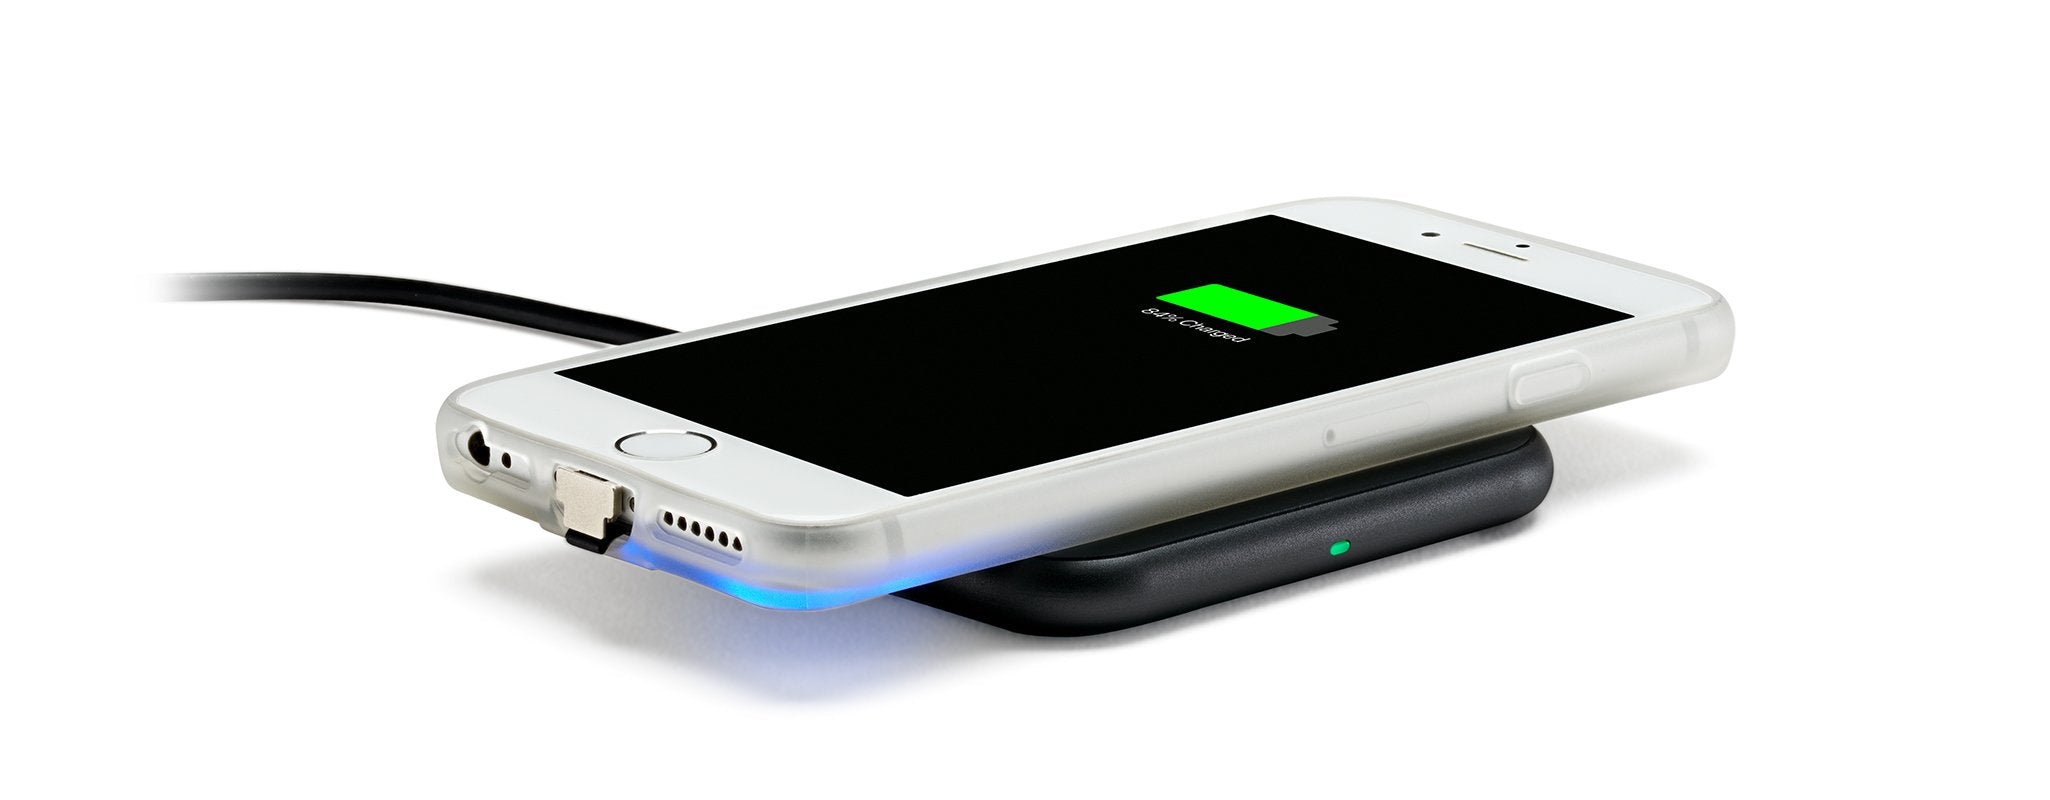 iPhone 7 charging on chargepad with Chargecase